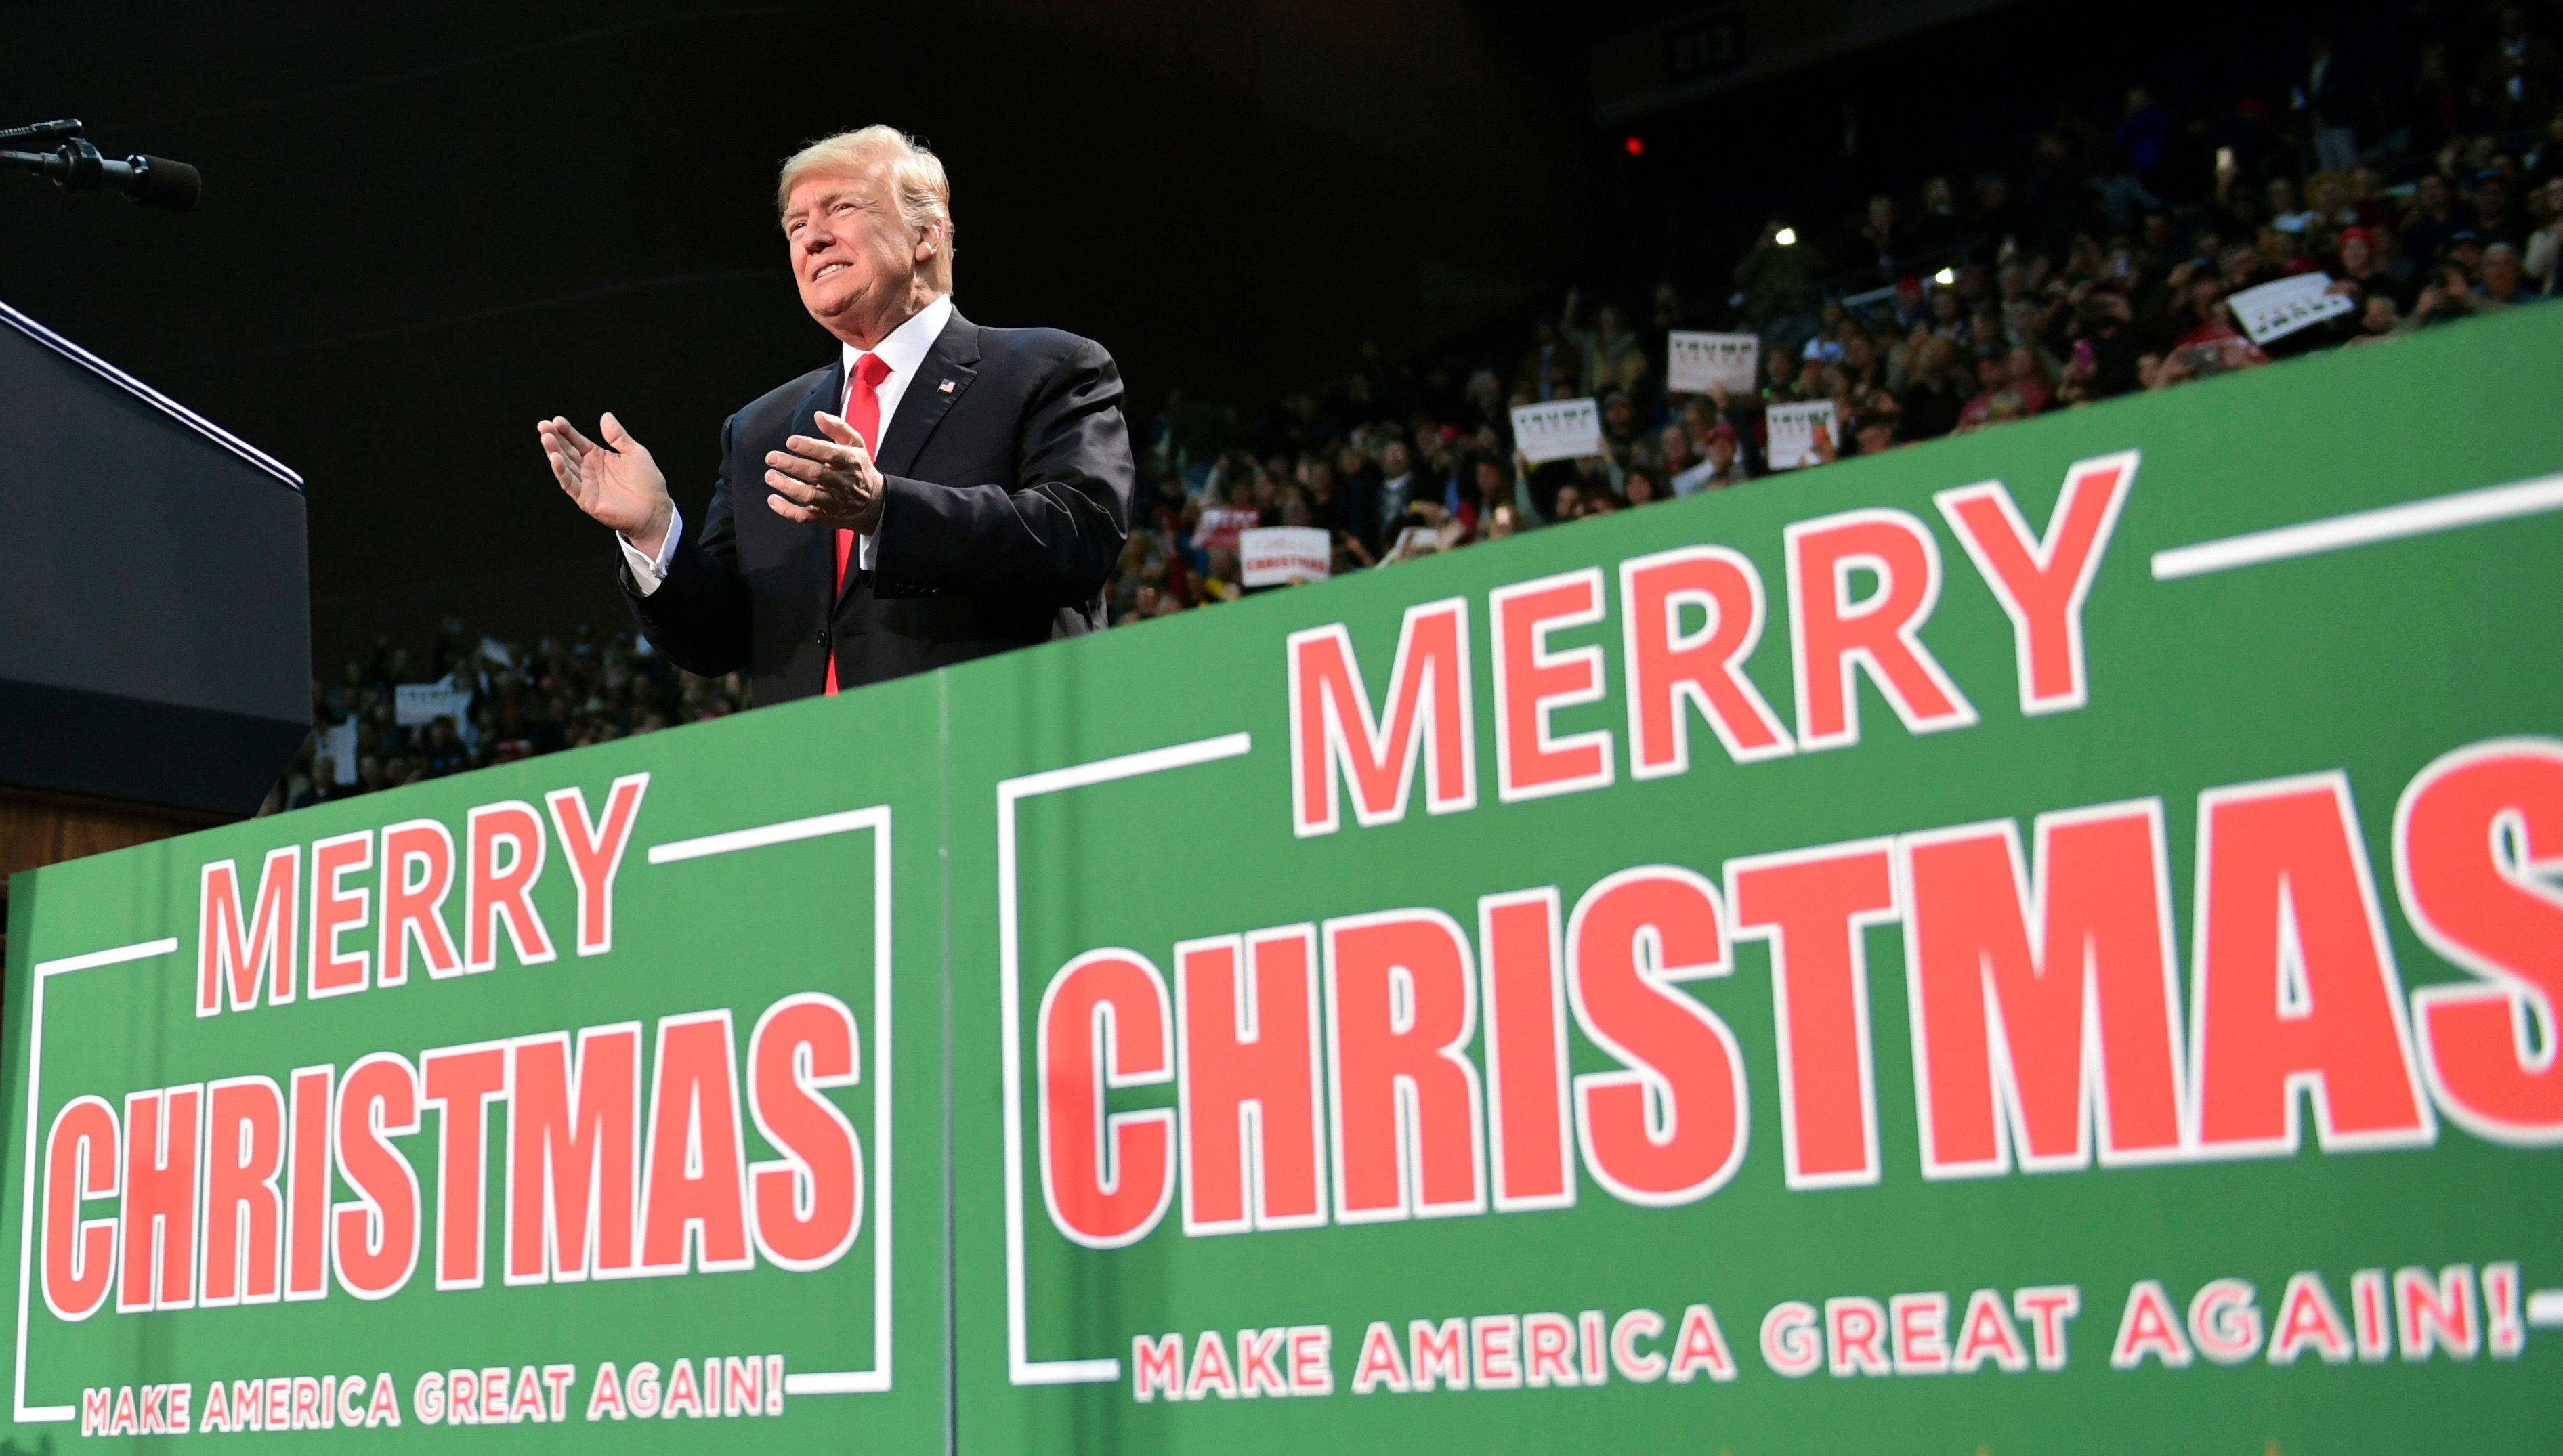 "FILE - In this Dec. 8, 2017, file photo, President Donald Trump takes to the stage at a campaign-style rally at the Pensacola Bay Center, in Pensacola, Fla. There's no mistaking Trump's ""Merry Christmas"" message _ he wields it as a weapon against political correctness. For weeks, he's been liberally sprinkling his public remarks with Christmas tidings.  (AP Photo/Susan Walsh, File)"